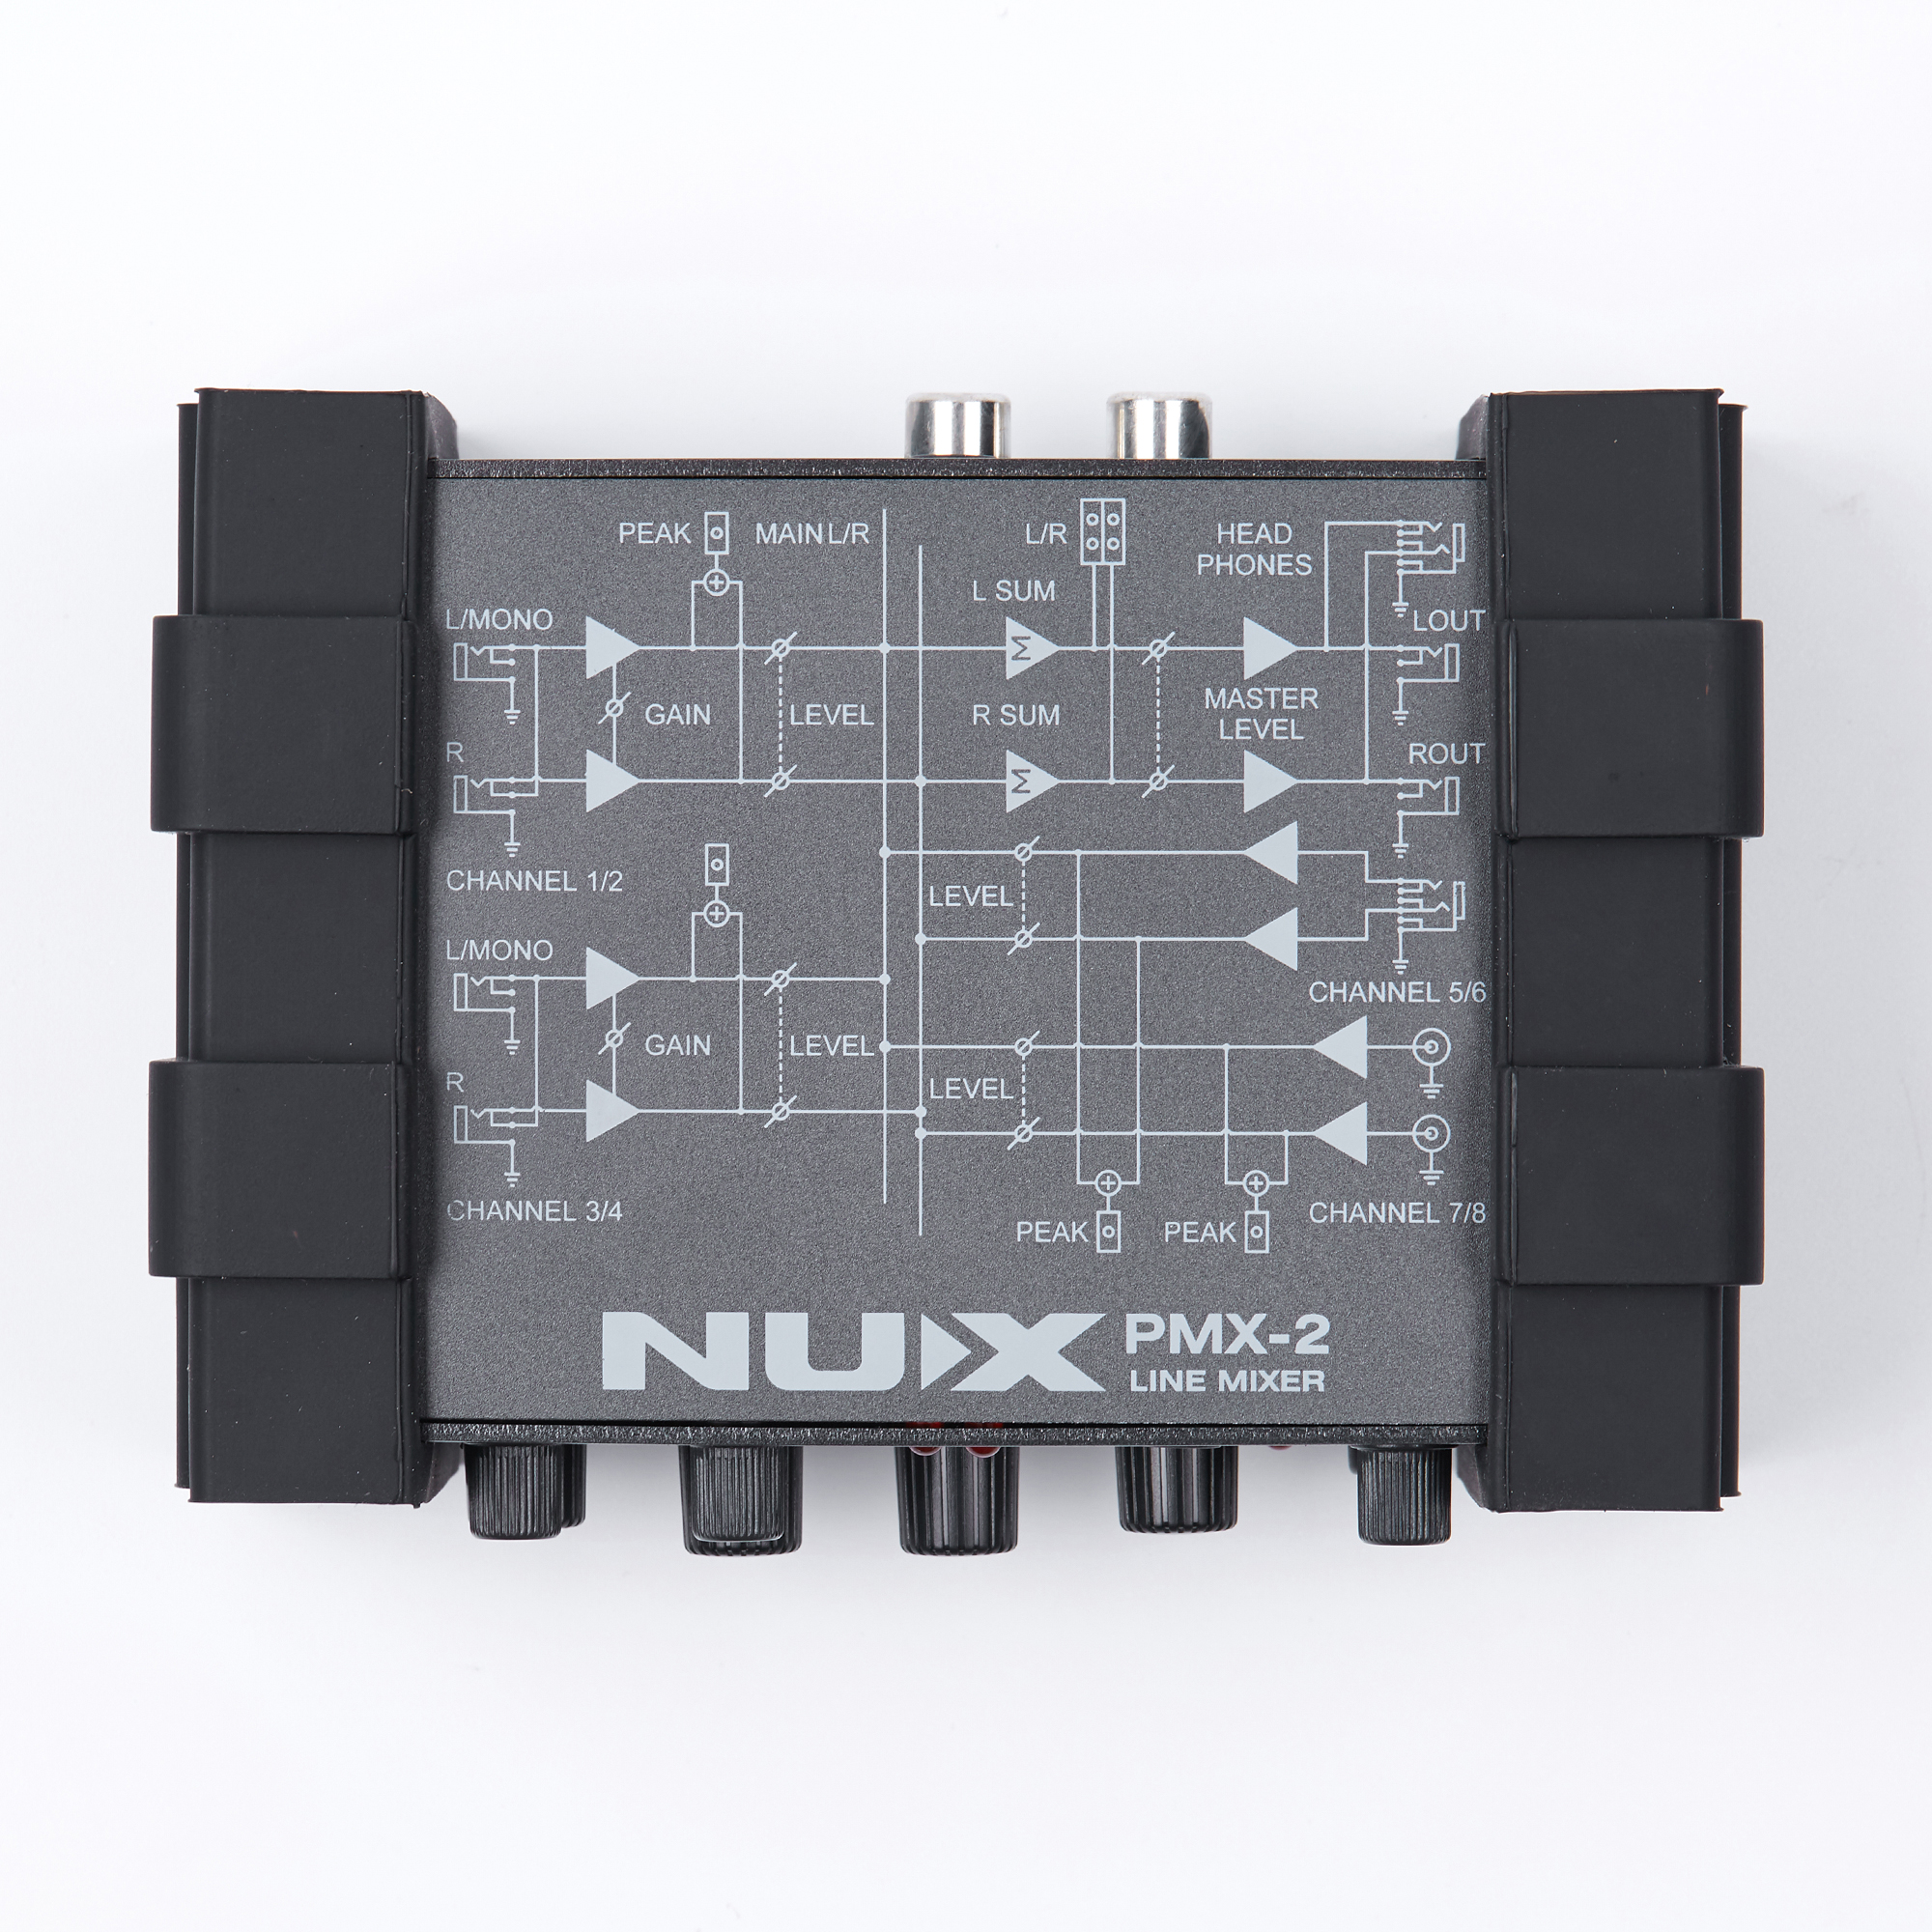 Gain Control 8 Inputs and 2 Outputs NUX PMX-2 Multi-Channel Mini Mixer 30 Musical Instruments Accessories for Guitar Bass Player принтер ricoh sp 325dnw картридж 1000стр лазерный 28 стр мин 1200х1200dpi duplex lan wifi nfc usb а4